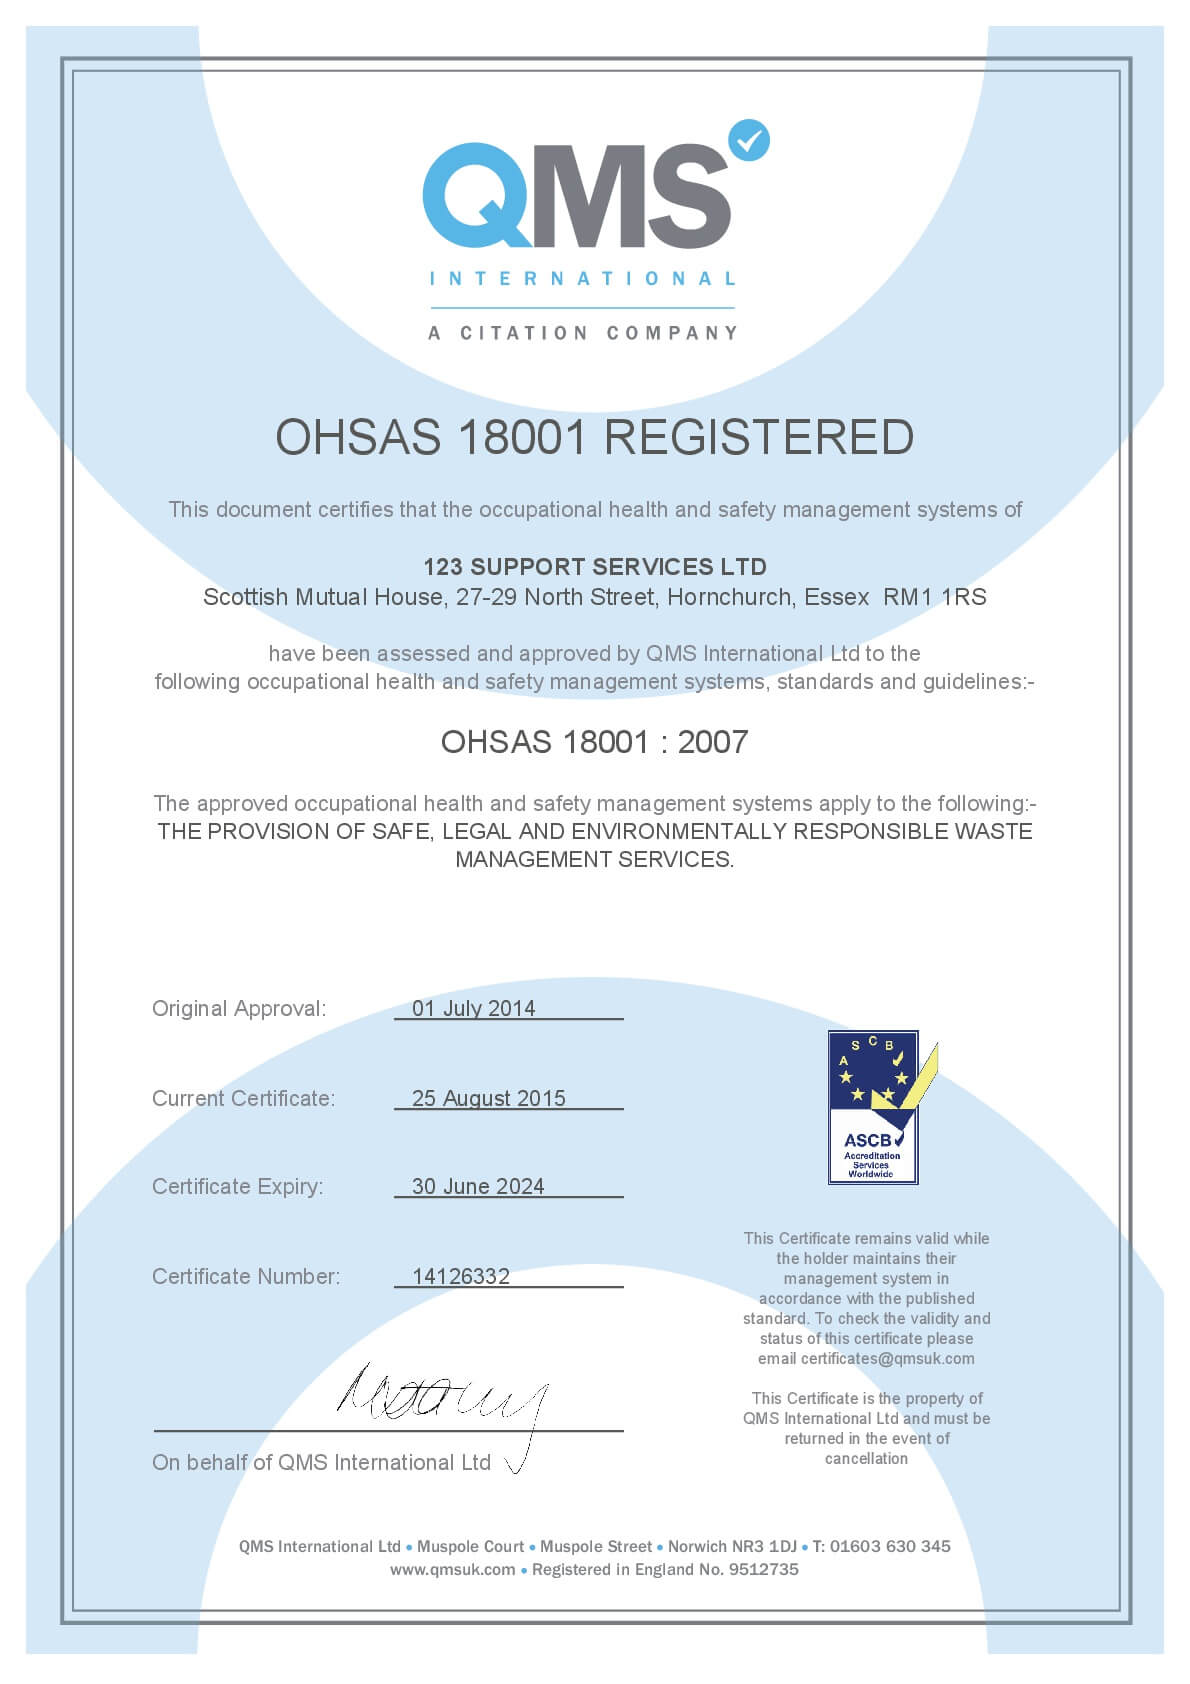 OHSAS 18001 Registered certificate